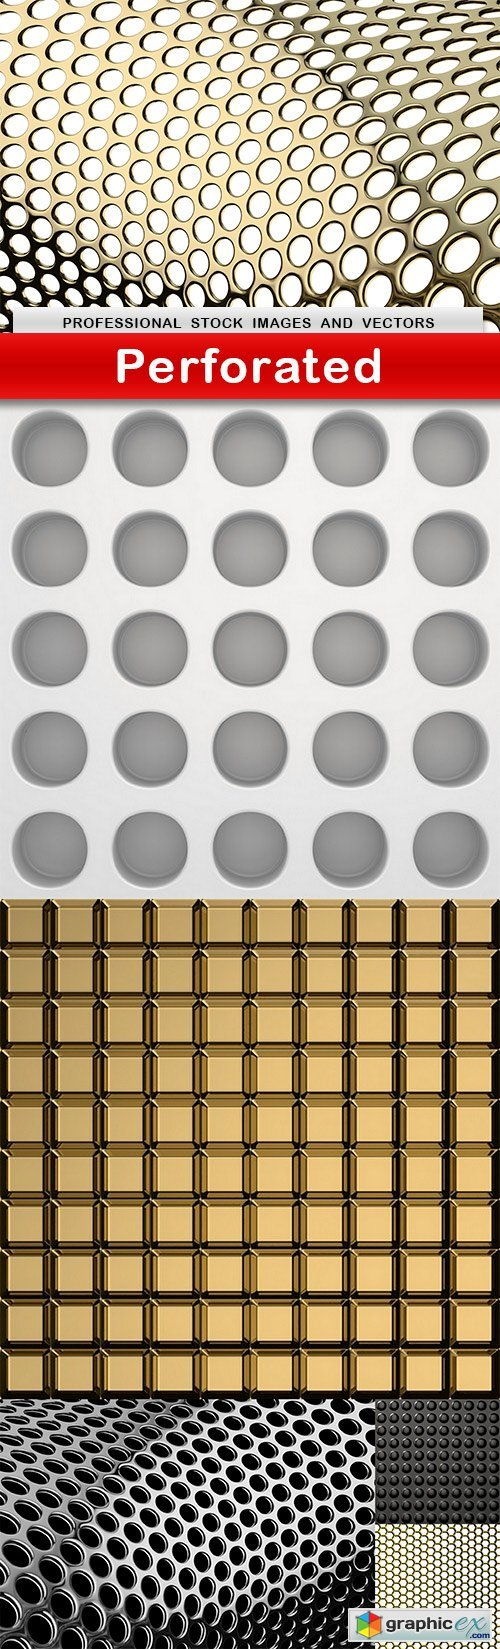 Perforated  6 UHQ JPEG  stock images